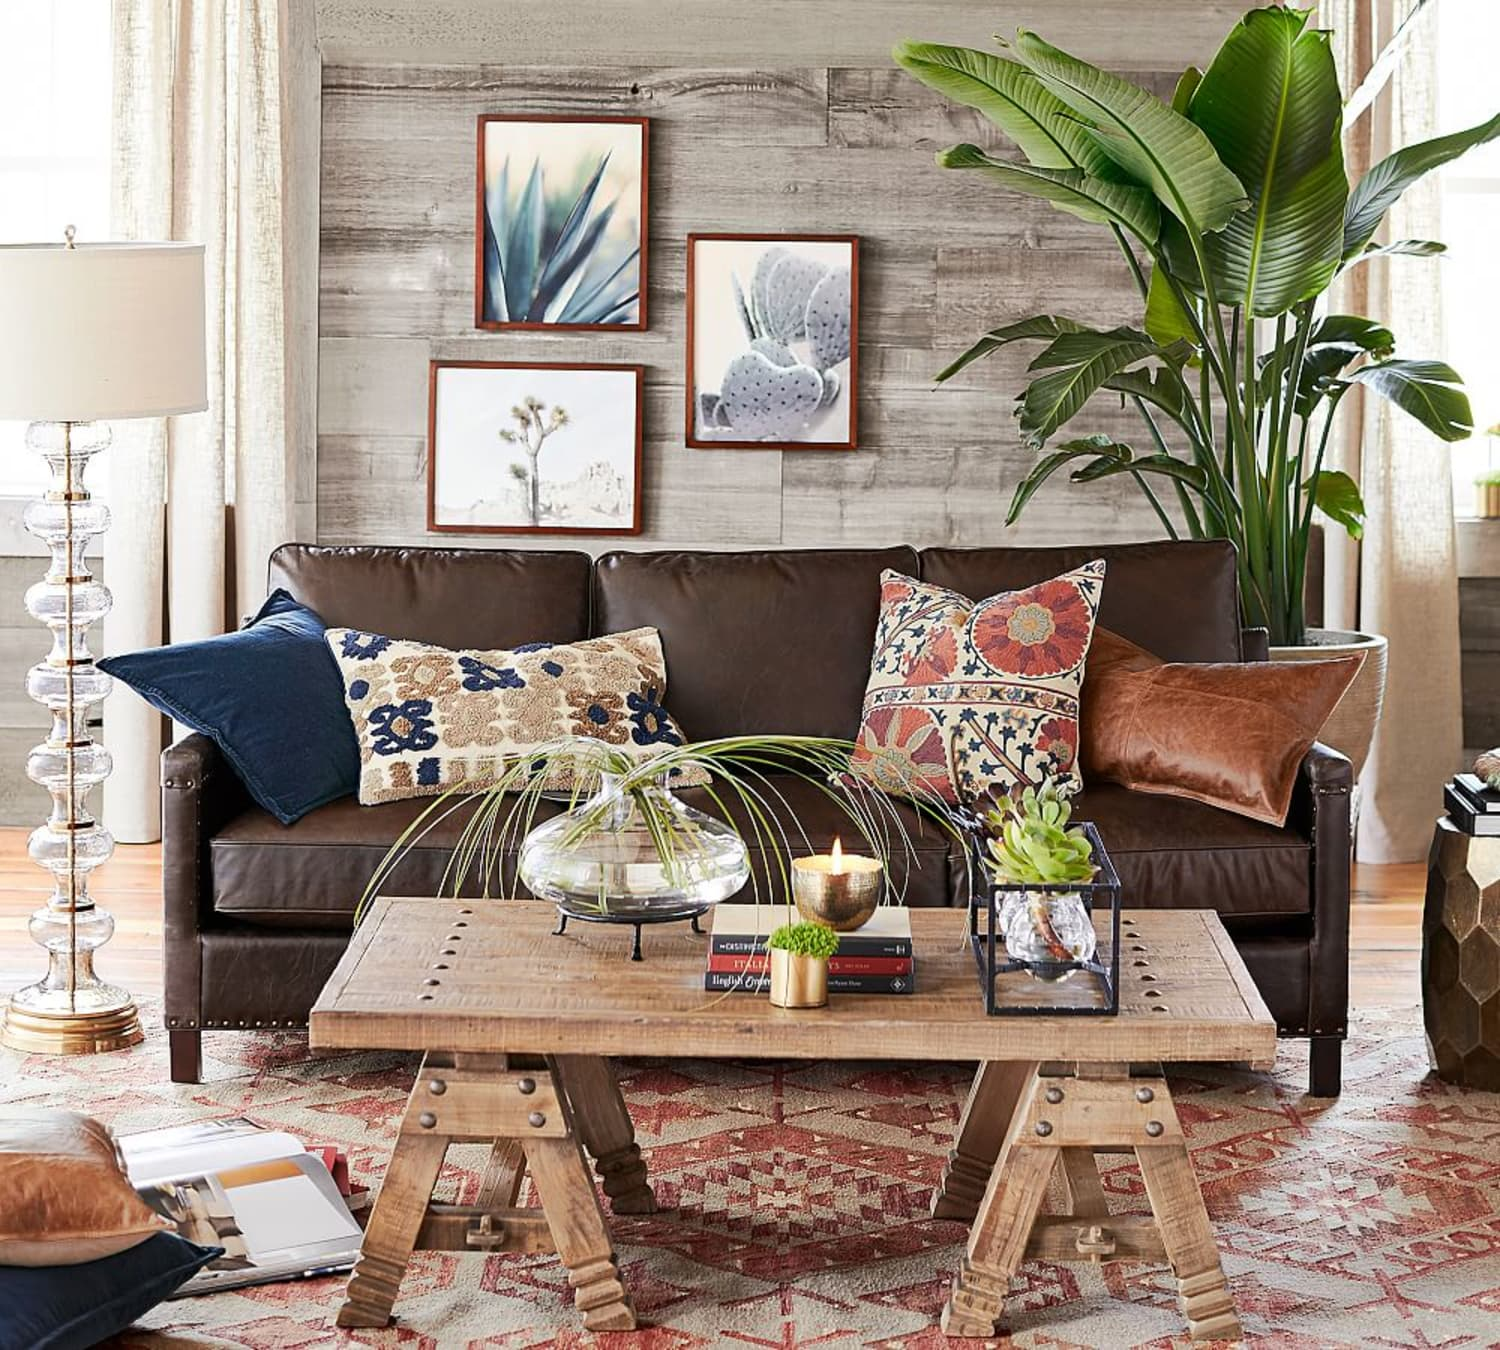 Pottery Barn Is Expanding Their Small Spaces Collection